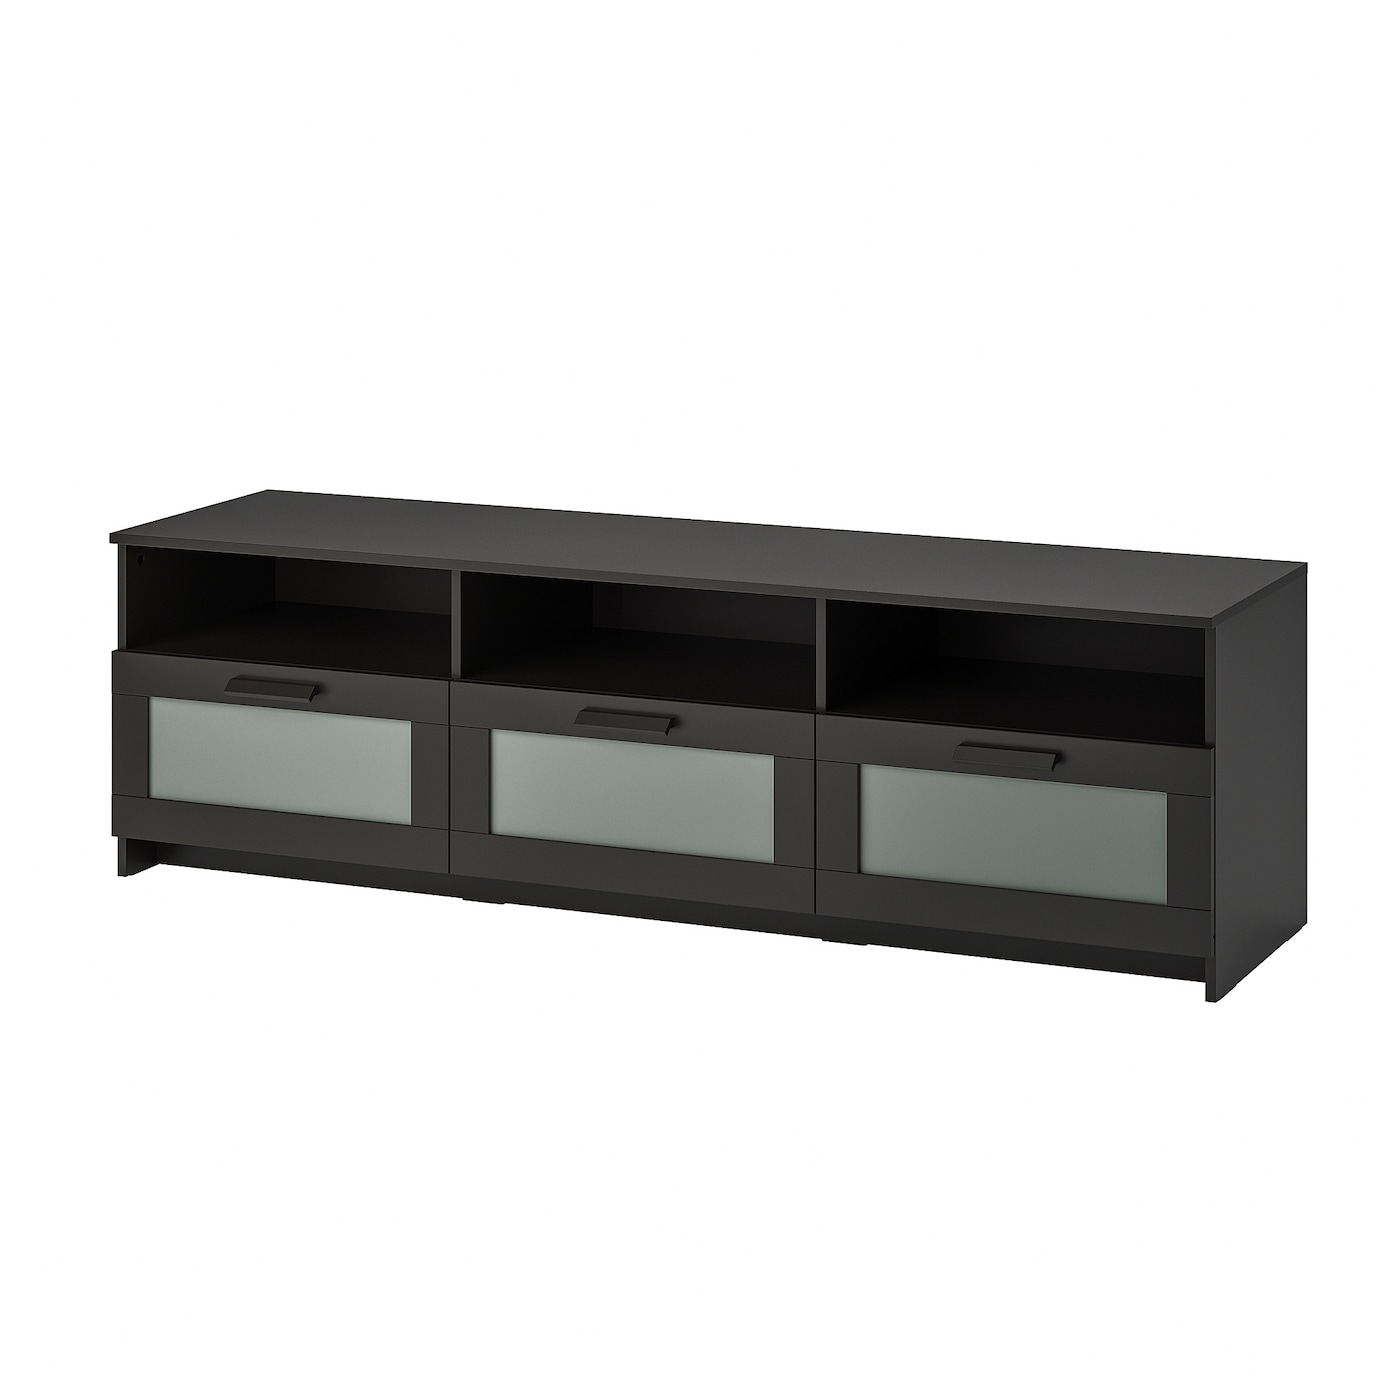 IKEA BRIMNES TV bench